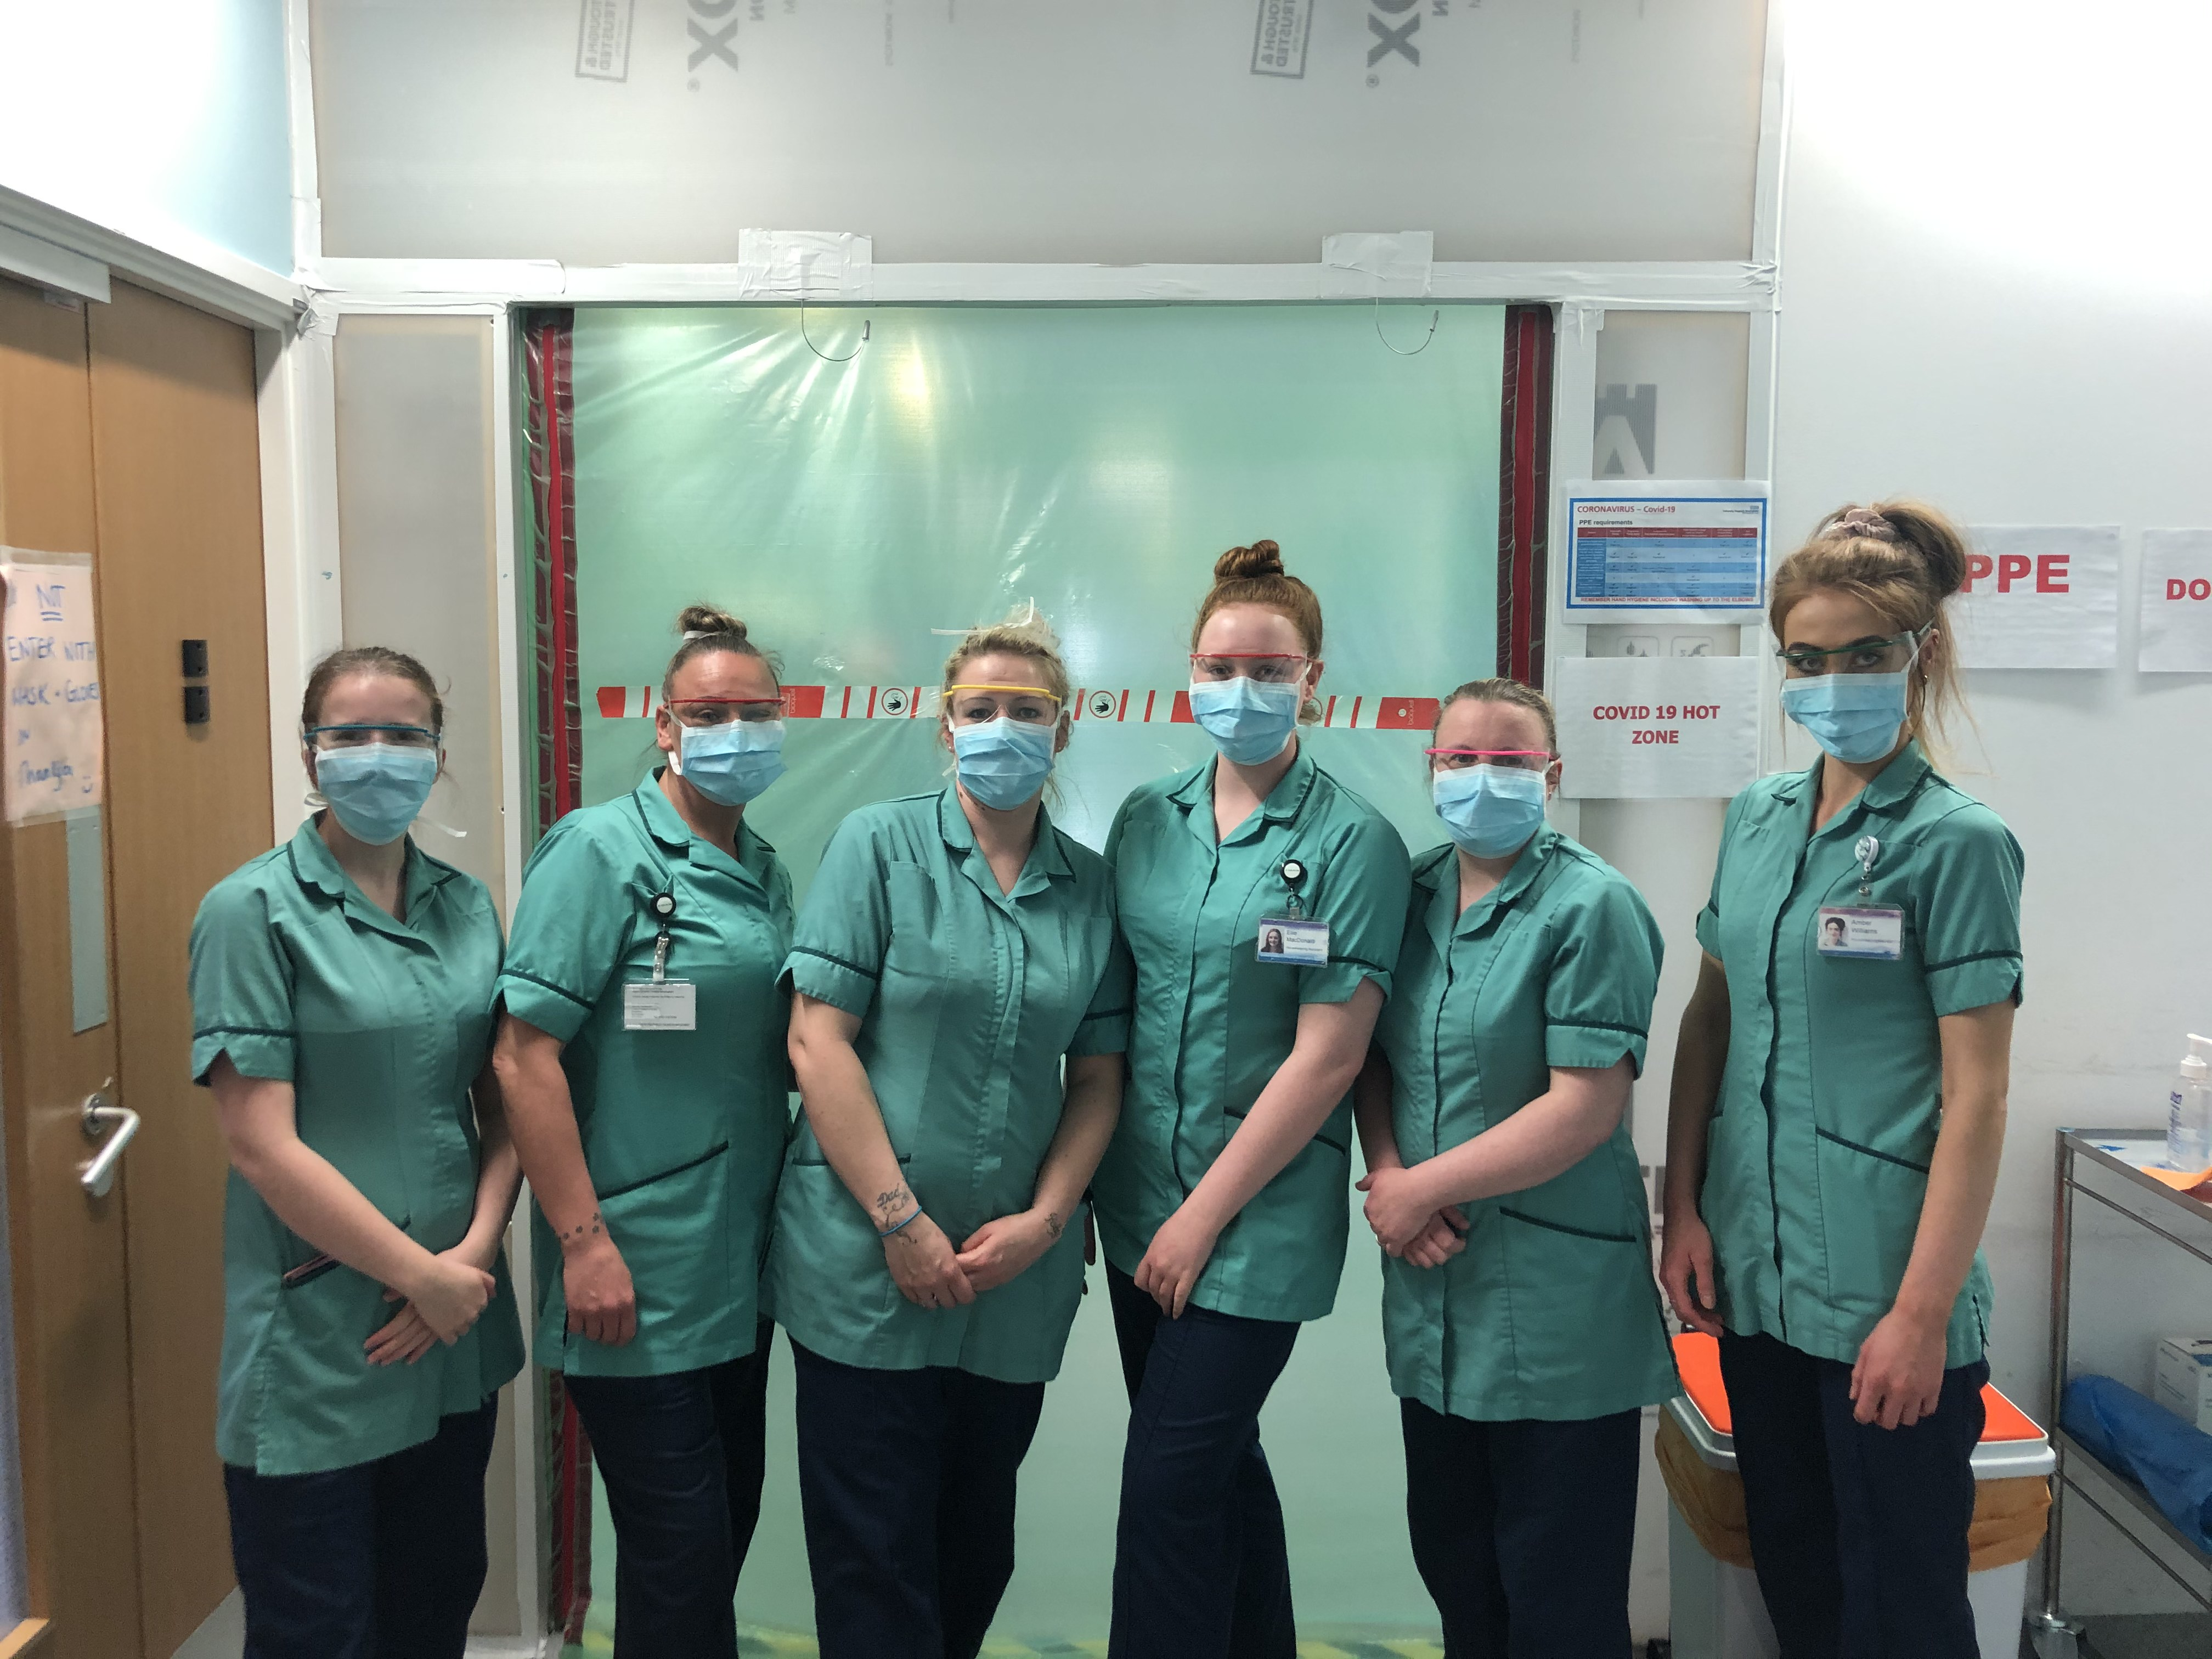 Teen who works as a cleaner in hospital and her coworkers